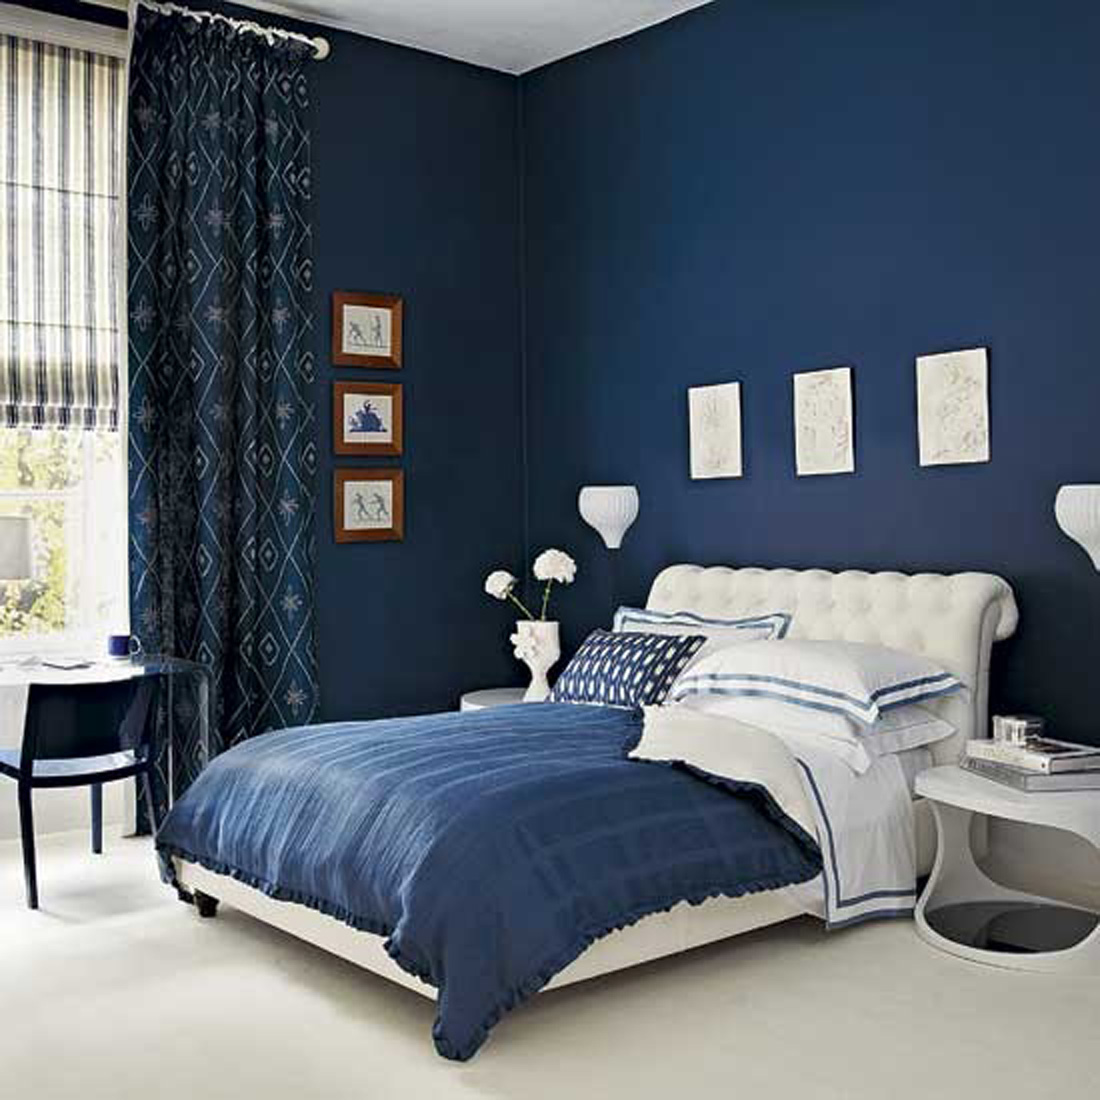 target chapter navy blue accent wall bedroom makeover emily table chair cherry dining room and chairs ikea side cocktail sets changing leick recliner wedge end big sun umbrella